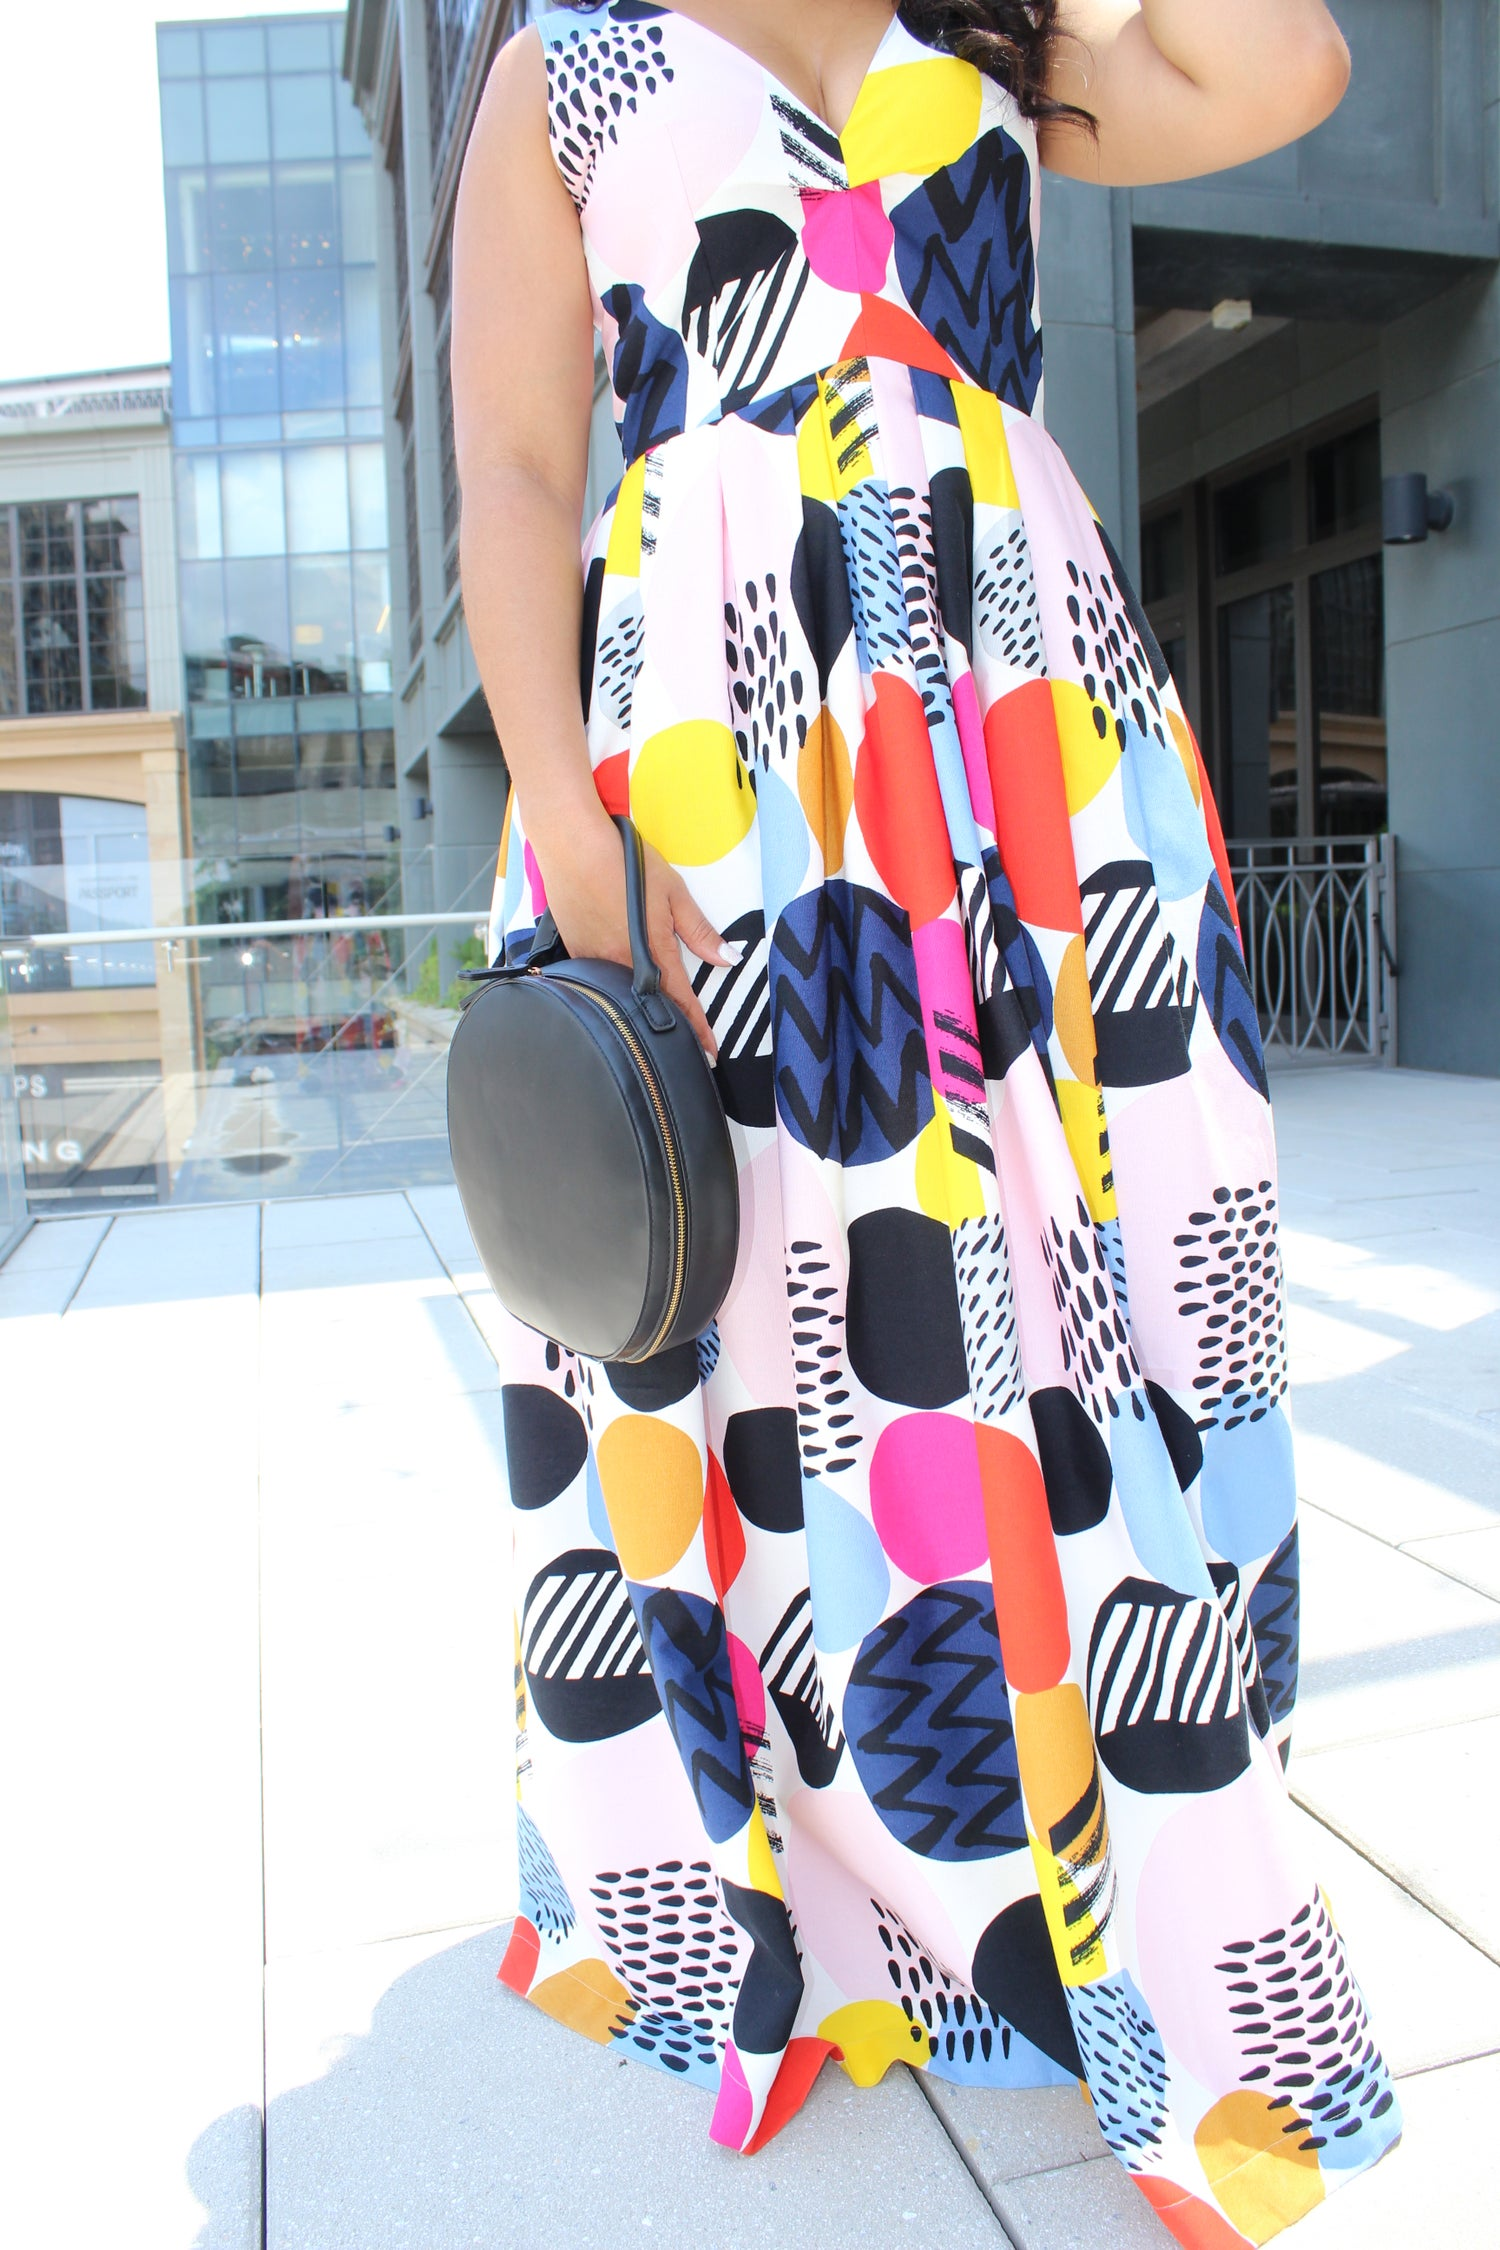 Image of Pop Art Maxi Dress